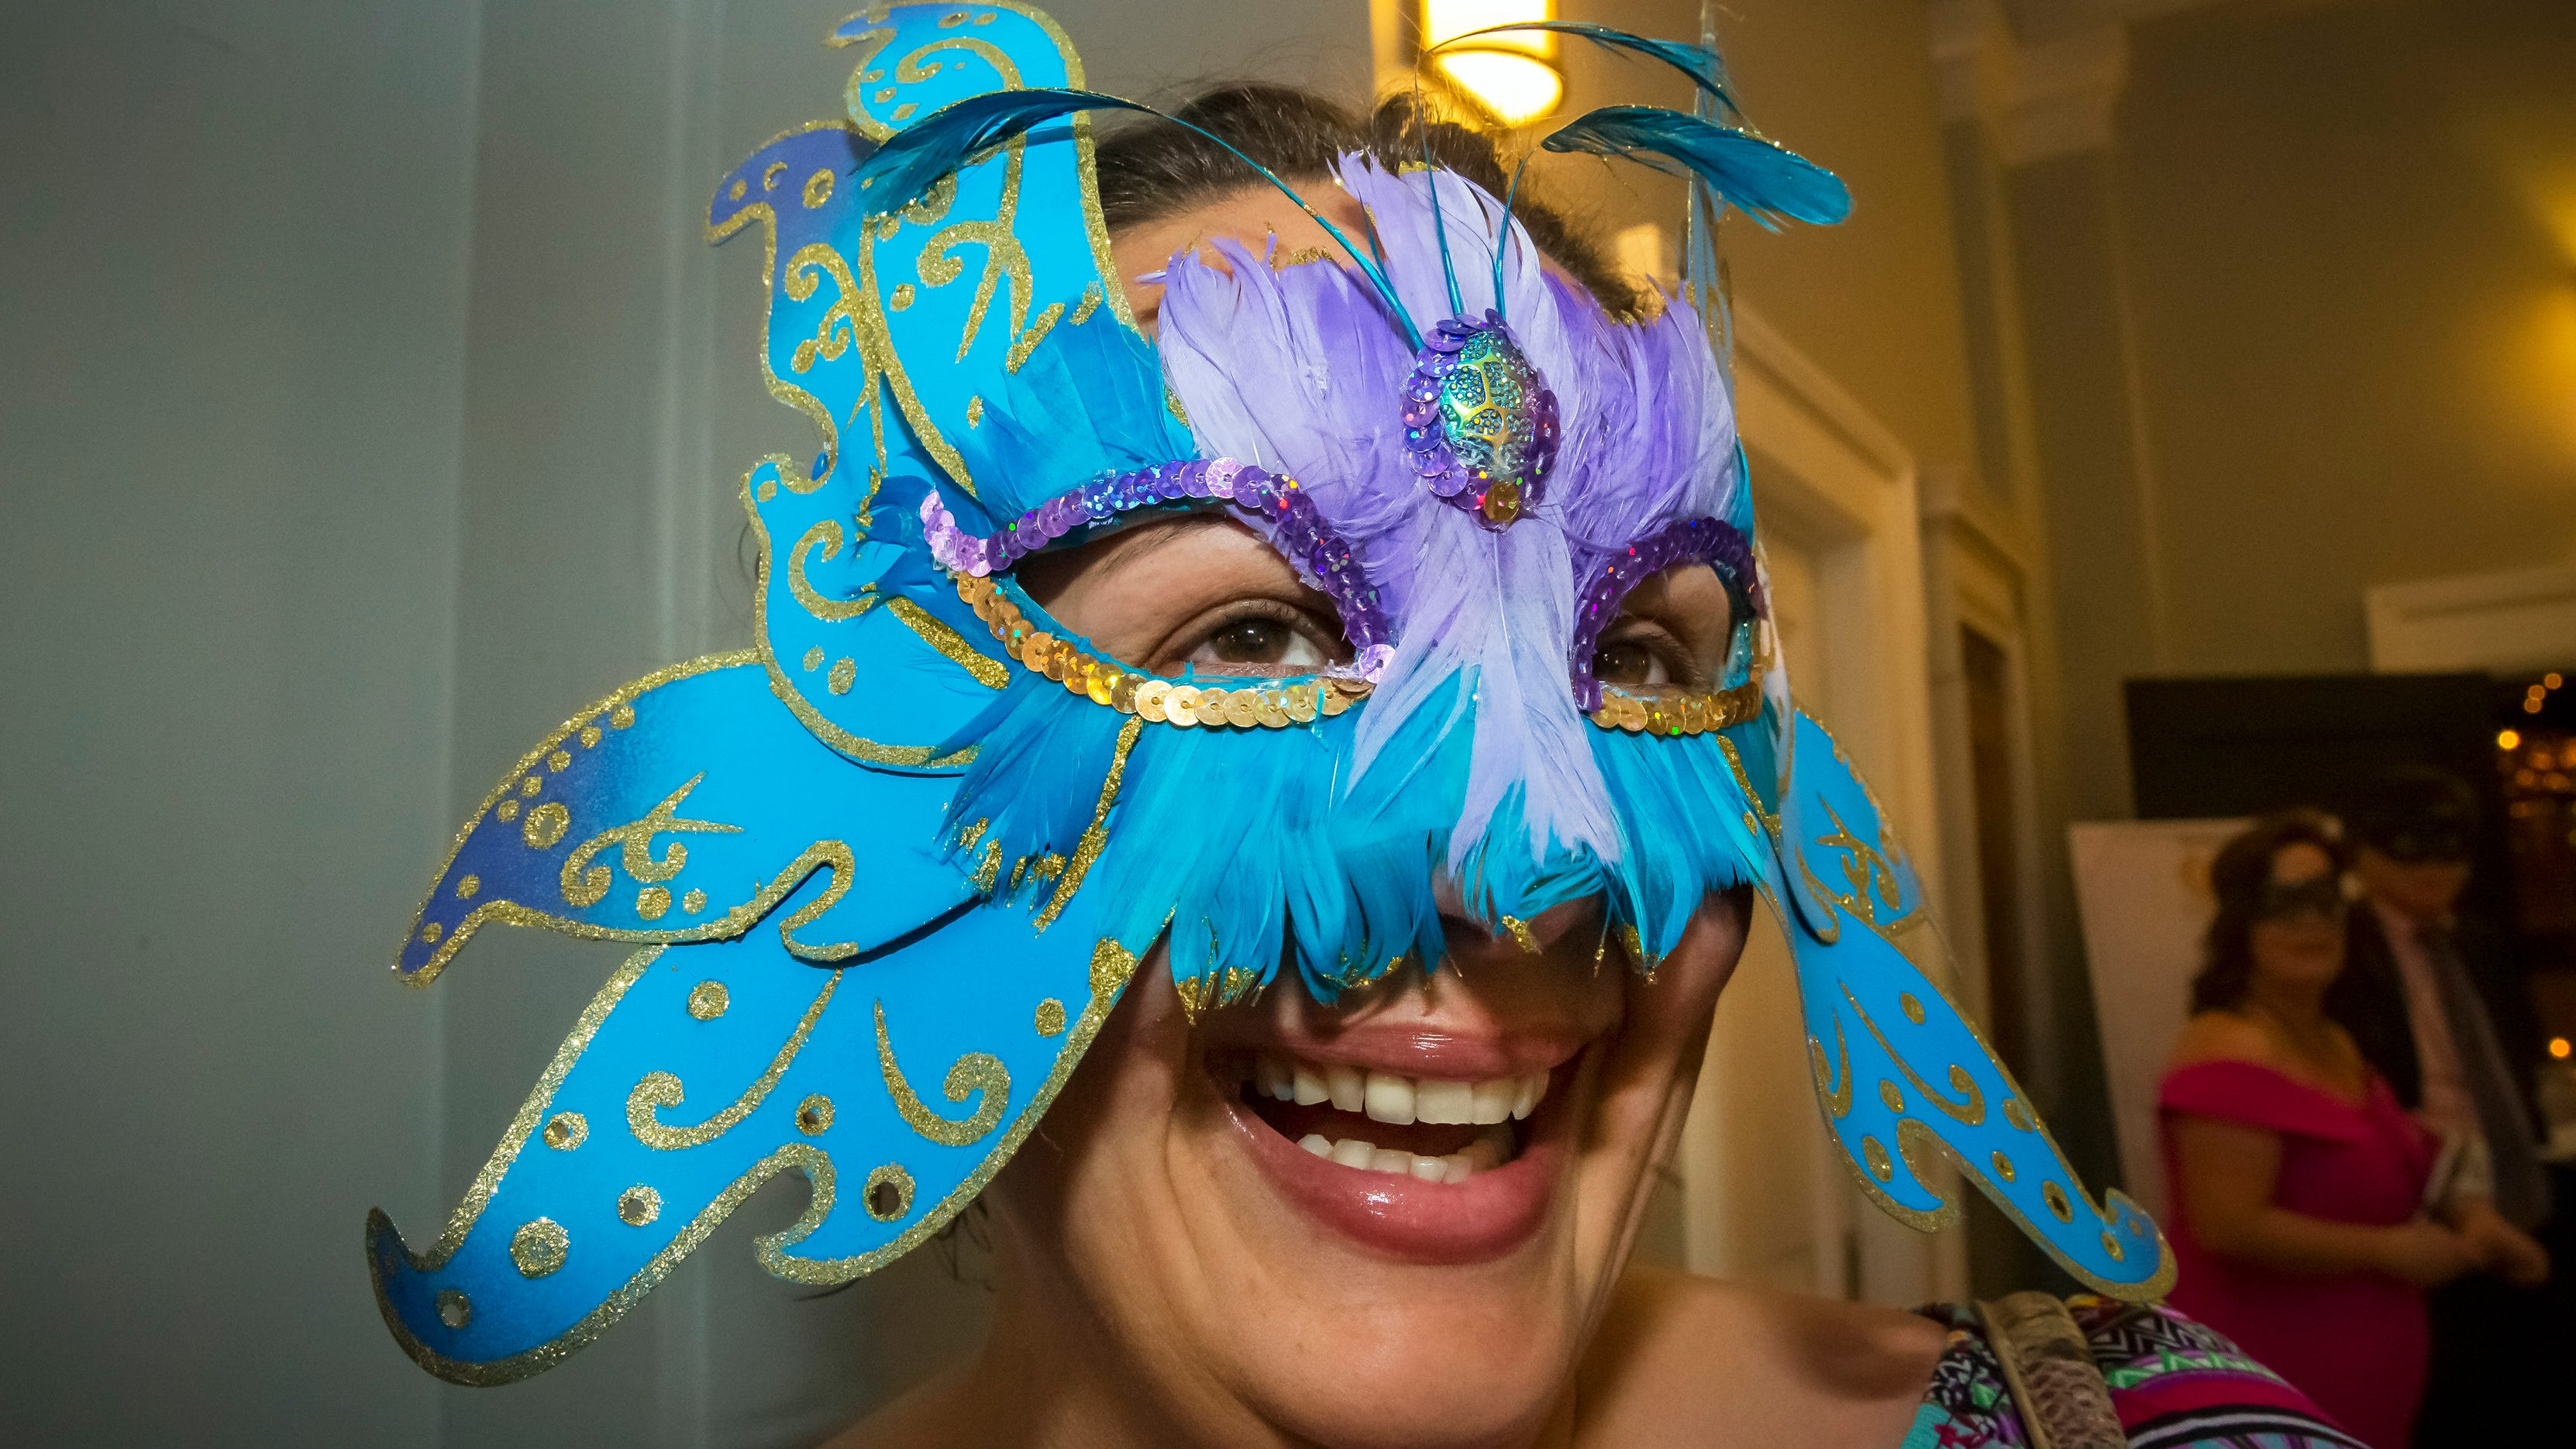 Carrie Estes at the Masquerade Bash at the Center for the Arts on Saturday, April 14, 2019.